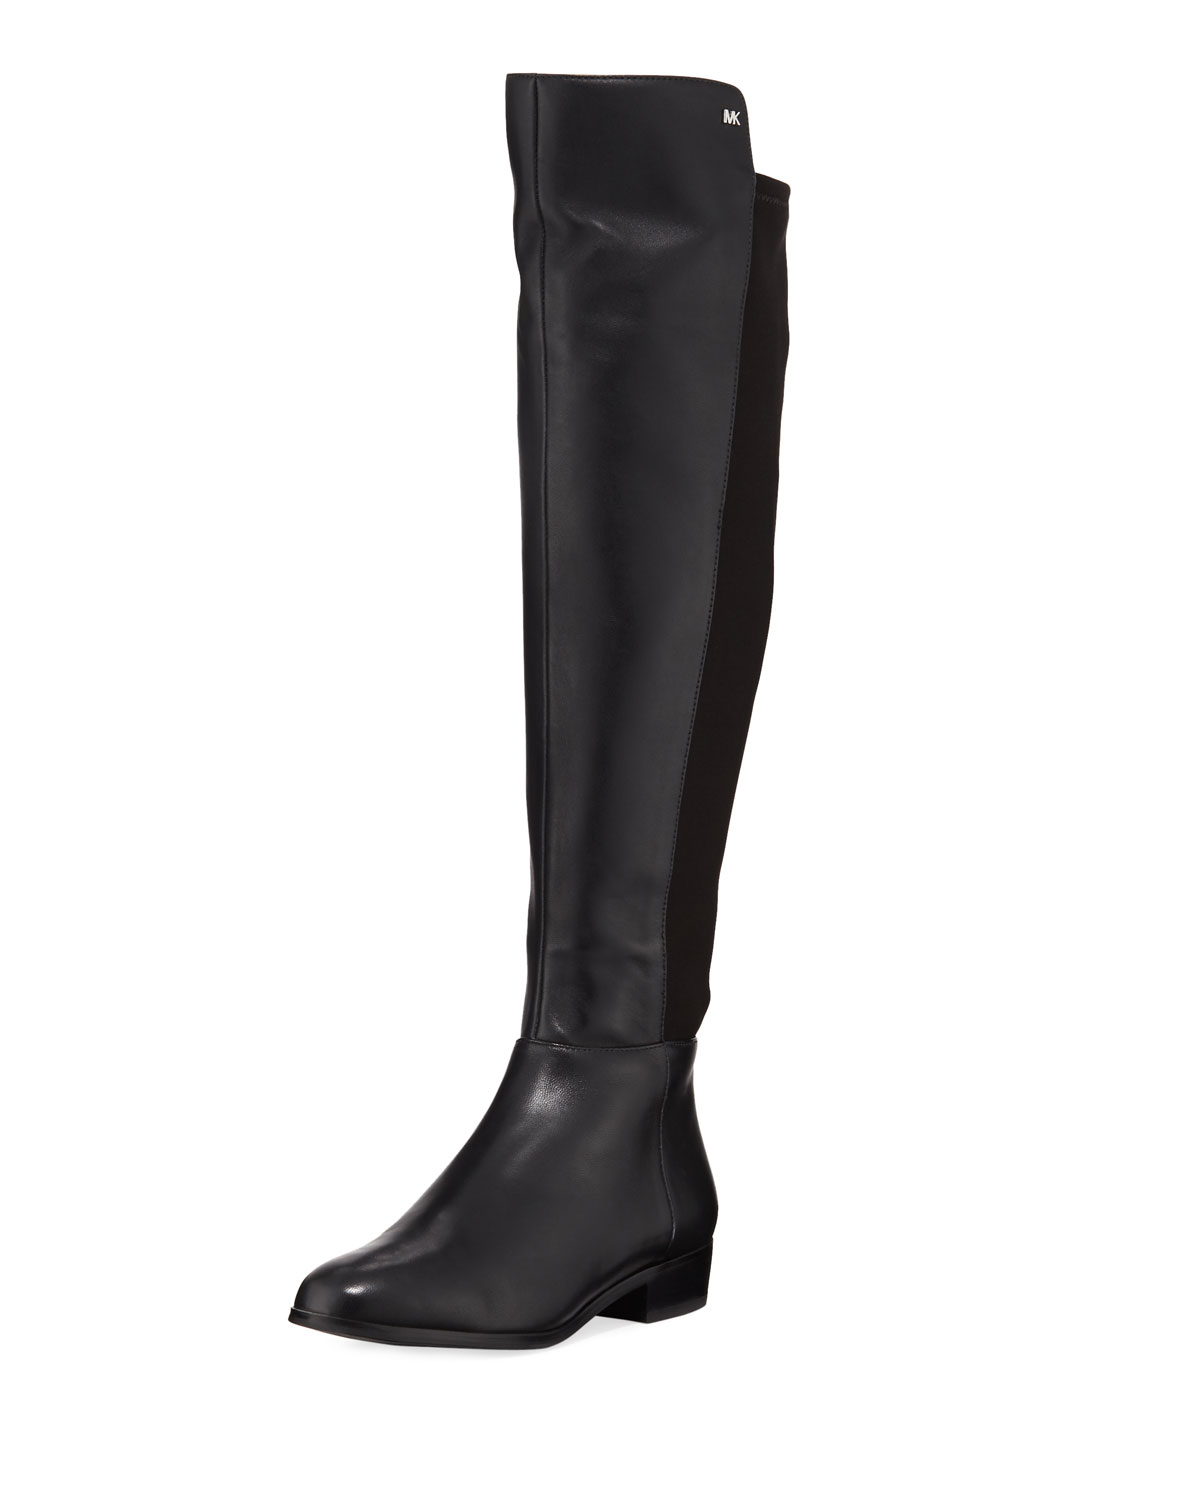 27629e23ddfb MICHAEL Michael KorsBromley Sensitive Stretch Napa Flat Riding Boots